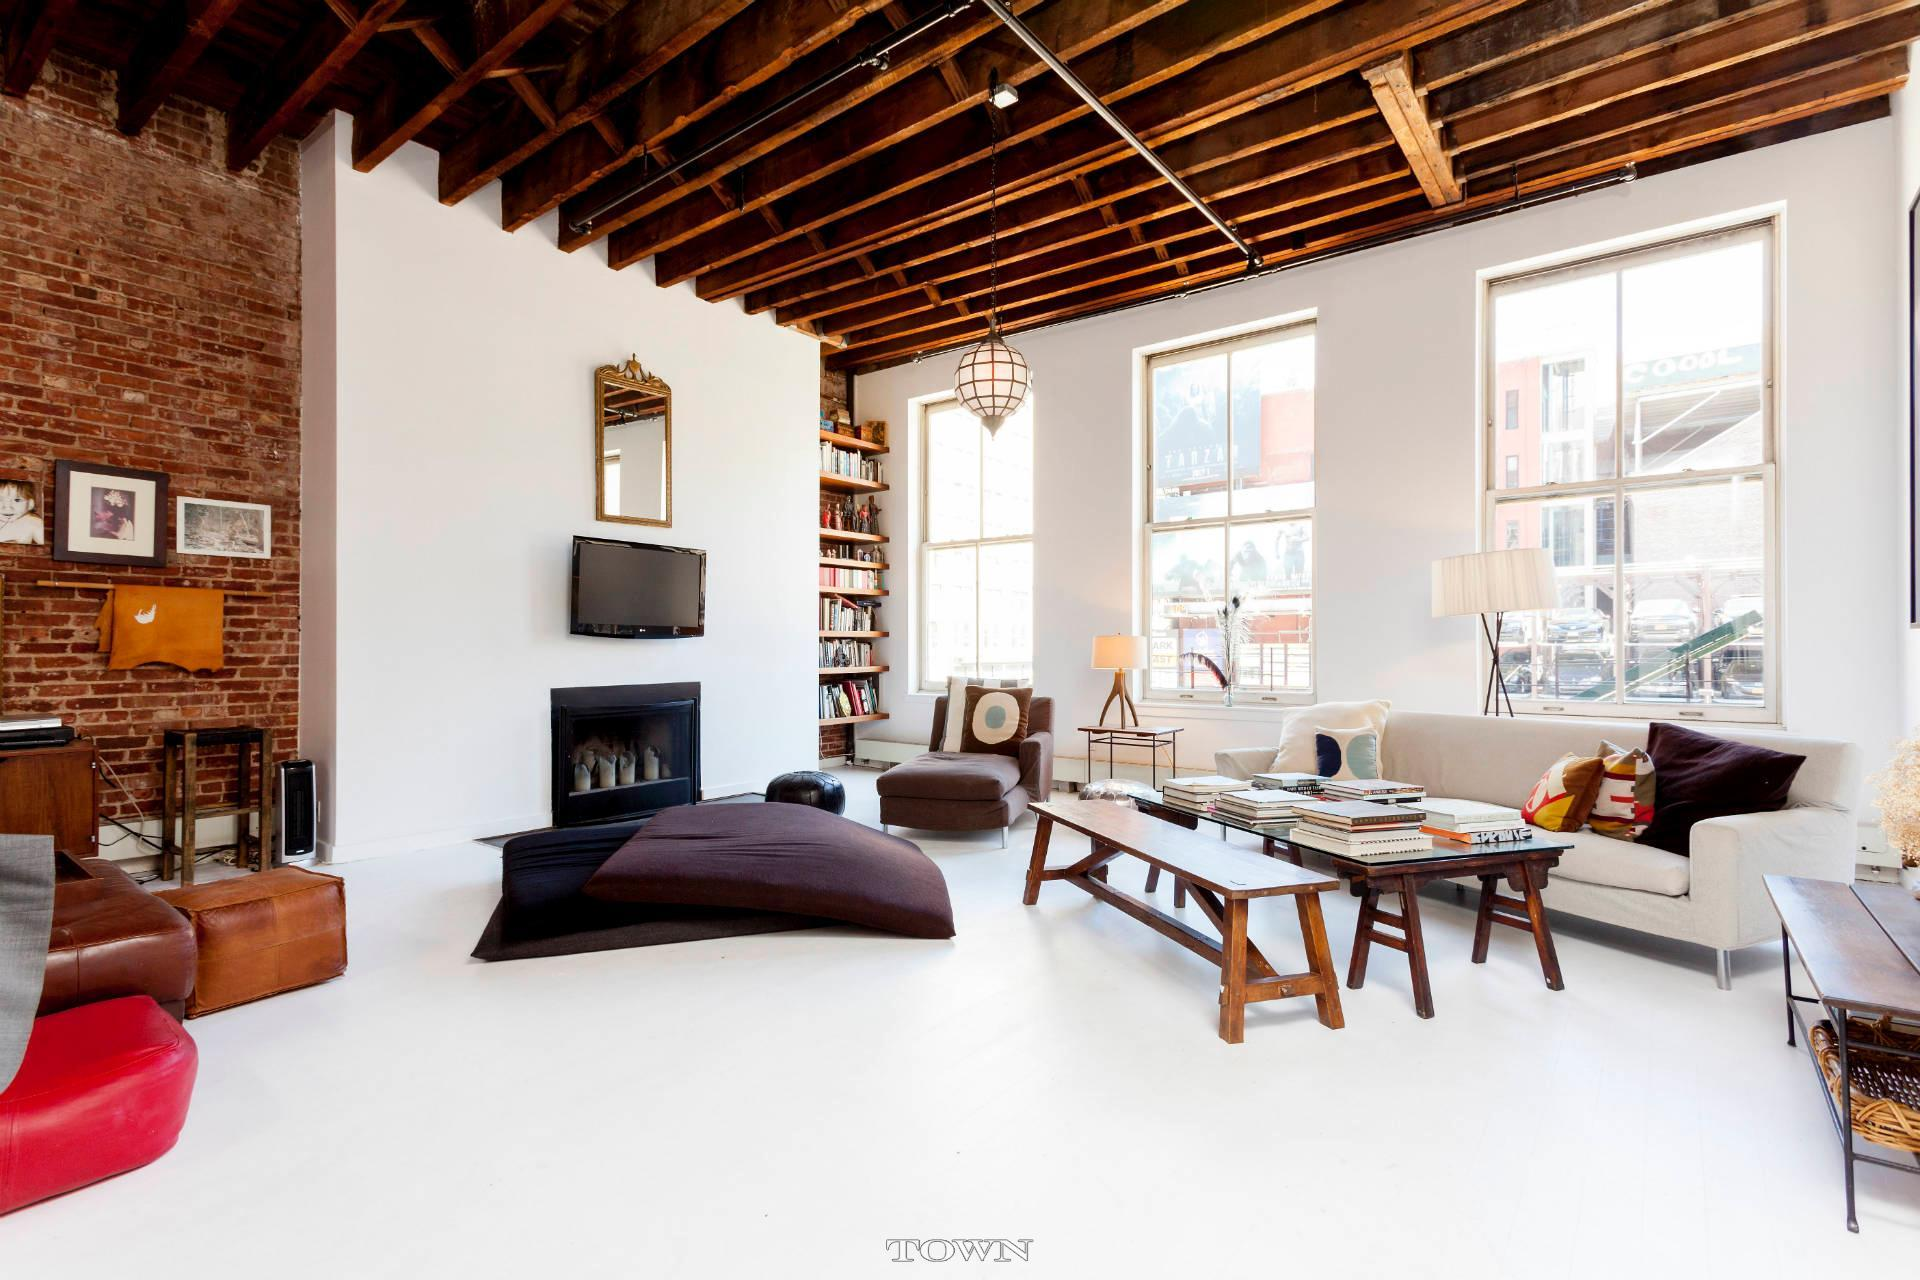 27 Great Jones Street, loft, rental, noho, living room